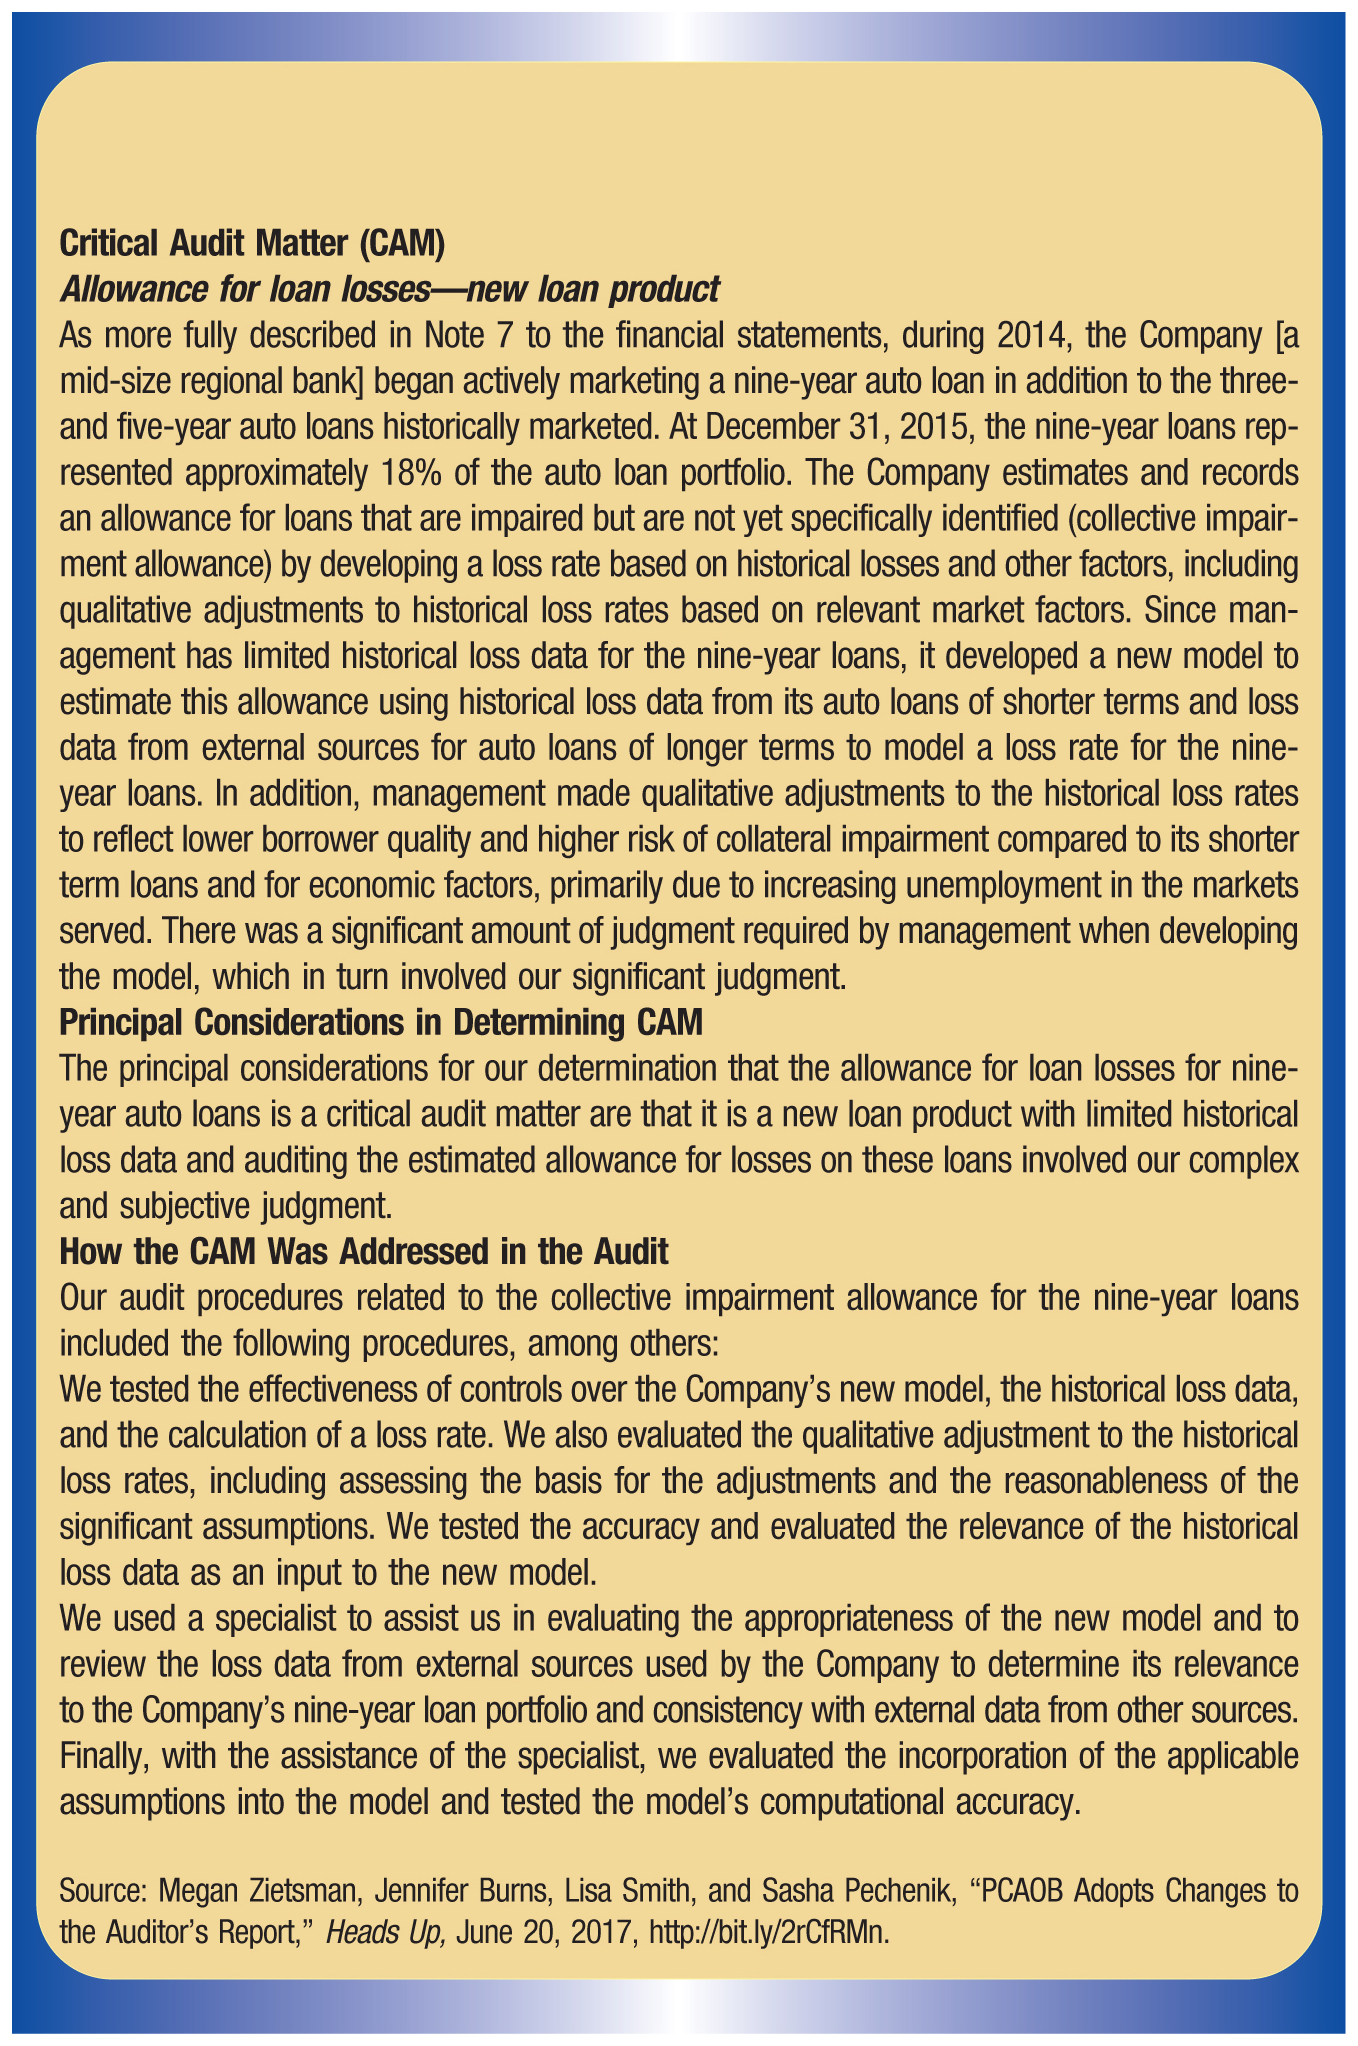 Critical Audit Matter (CAM) Allowance for loan losses—new loan product As more fully described in Note 7 to the financial statements, during 2014, the Company [a mid-size regional bank] began actively marketing a nine-year auto loan in addition to the three-and five-year auto loans historically marketed. At December 31, 2015, the nine-year loans represented approximately 18% of the auto loan portfolio. The Company estimates and records an allowance for loans that are impaired but are not yet specifically identified (collective impairment allowance) by developing a loss rate based on historical losses and other factors, including qualitative adjustments to historical loss rates based on relevant market factors. Since management has limited historical loss data for the nine-year loans, it developed a new model to estimate this allowance using historical loss data from its auto loans of shorter terms and loss data from external sources for auto loans of longer terms to model a loss rate for the nine-year loans. In addition, management made qualitative adjustments to the historical loss rates to reflect lower borrower quality and higher risk of collateral impairment compared to its shorter term loans and for economic factors, primarily due to increasing unemployment in the markets served. There was a significant amount of judgment required by management when developing the model, which in turn involved our significant judgment. Principal Considerations in Determining CAM The principal considerations for our determination that the allowance for loan losses for nine-year auto loans is a critical audit matter are that it is a new loan product with limited historical loss data and auditing the estimated allowance for losses on these loans involved our complex and subjective judgment. How the CAM Was Addressed in the Audit Our audit procedures related to the collective impairment allowance for the nine-year loans included the following procedures, among others: We tested the effectiveness of controls over the Company's new model, the historical loss data, and the calculation of a loss rate. We also evaluated the qualitative adjustment to the historical loss rates, including assessing the basis for the adjustments and the reasonableness of the significant assumptions. We tested the accuracy and evaluated the relevance of the historical loss data as an input to the new model. We used a specialist to assist us in evaluating the appropriateness of the new model and to review the loss data from external sources used by the Company to determine its relevance to the Company's nine-year loan portfolio and consistency with external data from other sources. Finally, with the assistance of the specialist, we evaluated the incorporation of the applicable assumptions into the model and tested the model's computational accuracy.